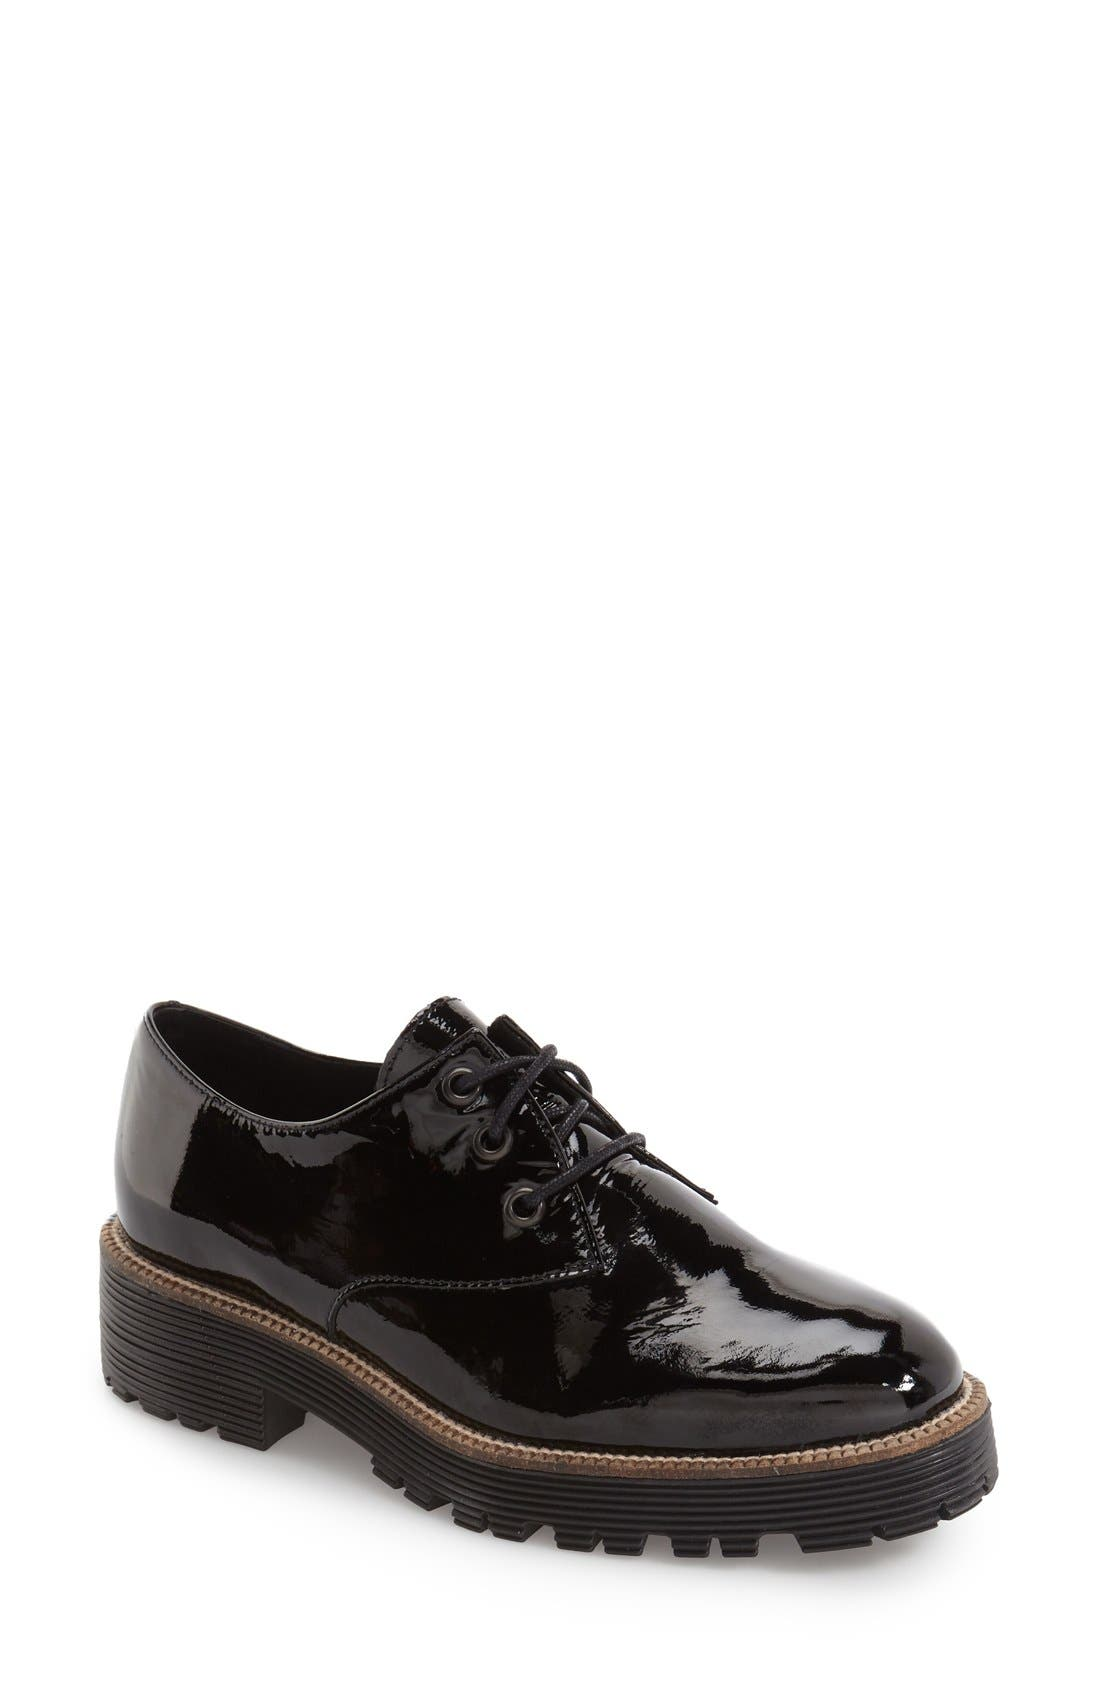 Main Image - Shelly's London 'Terrwyn' Platform Oxford (Women)